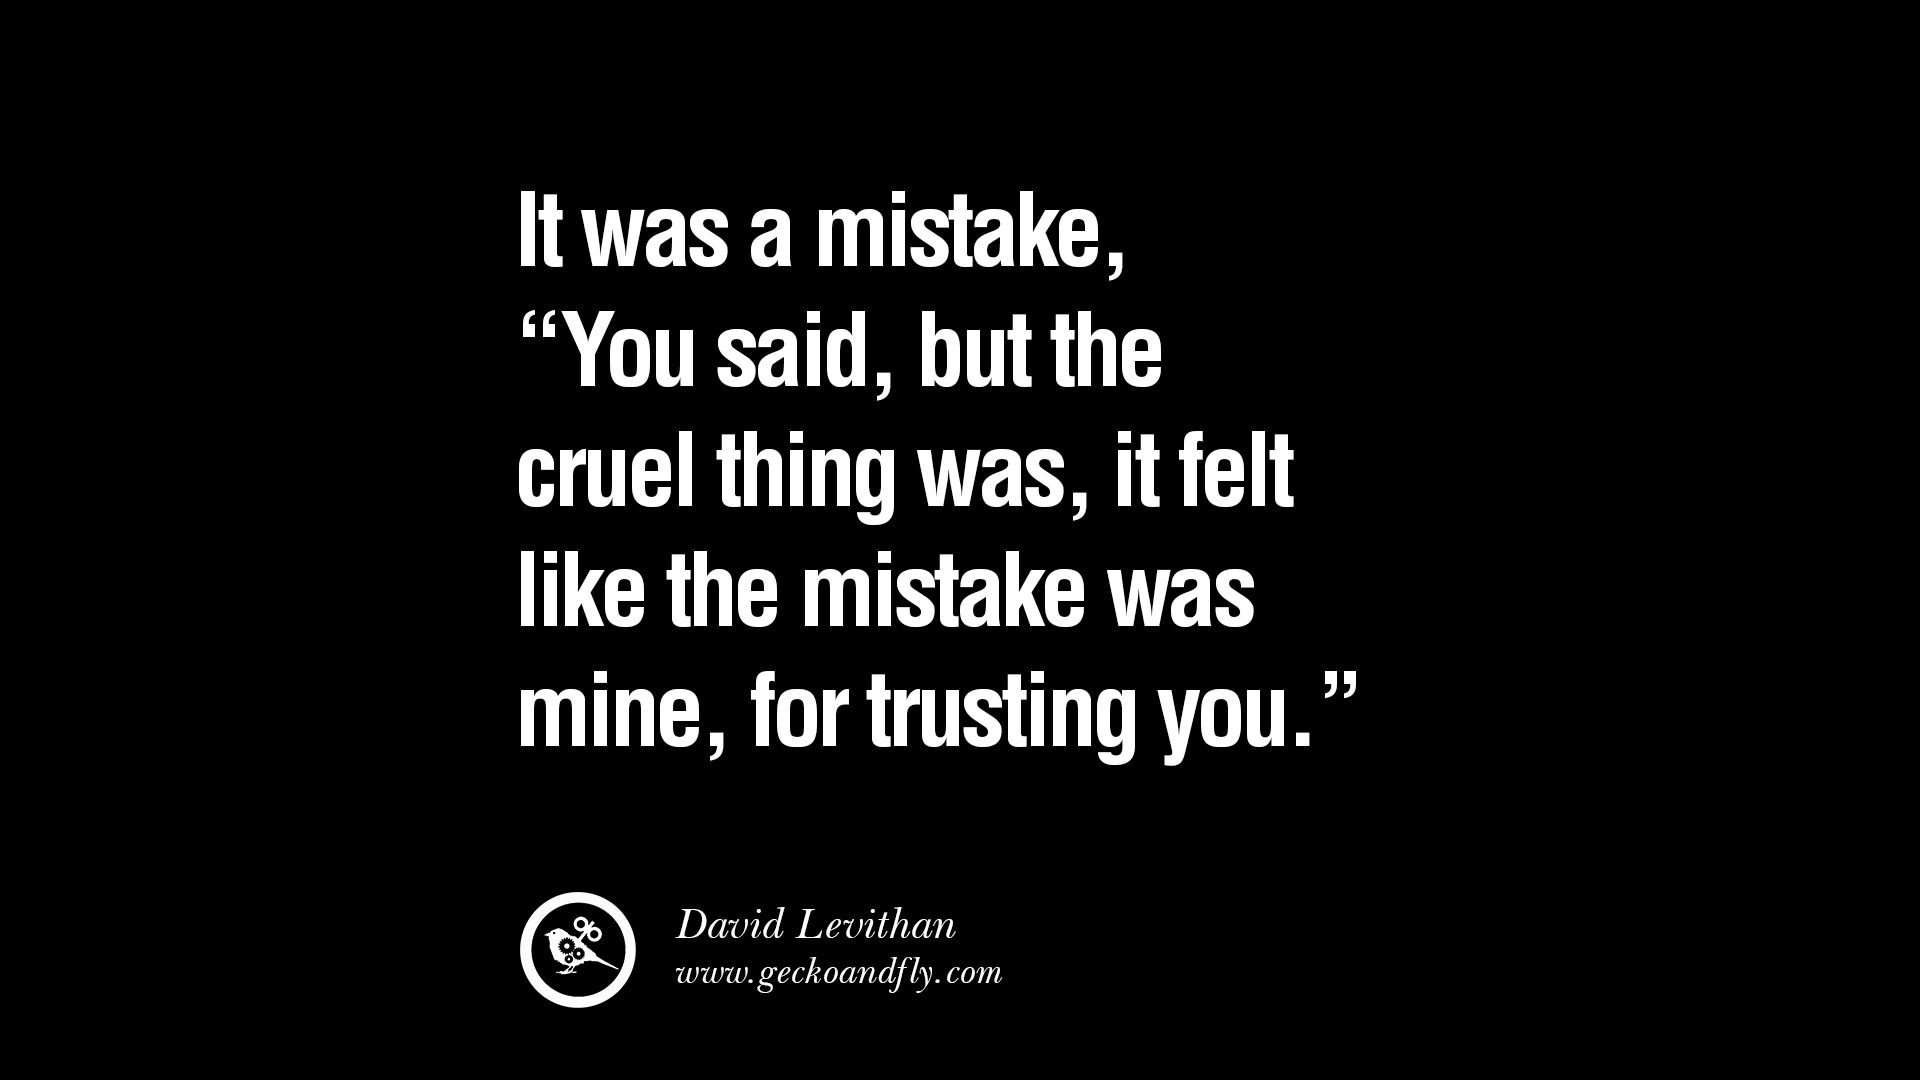 relationship need trust quotes betrayal